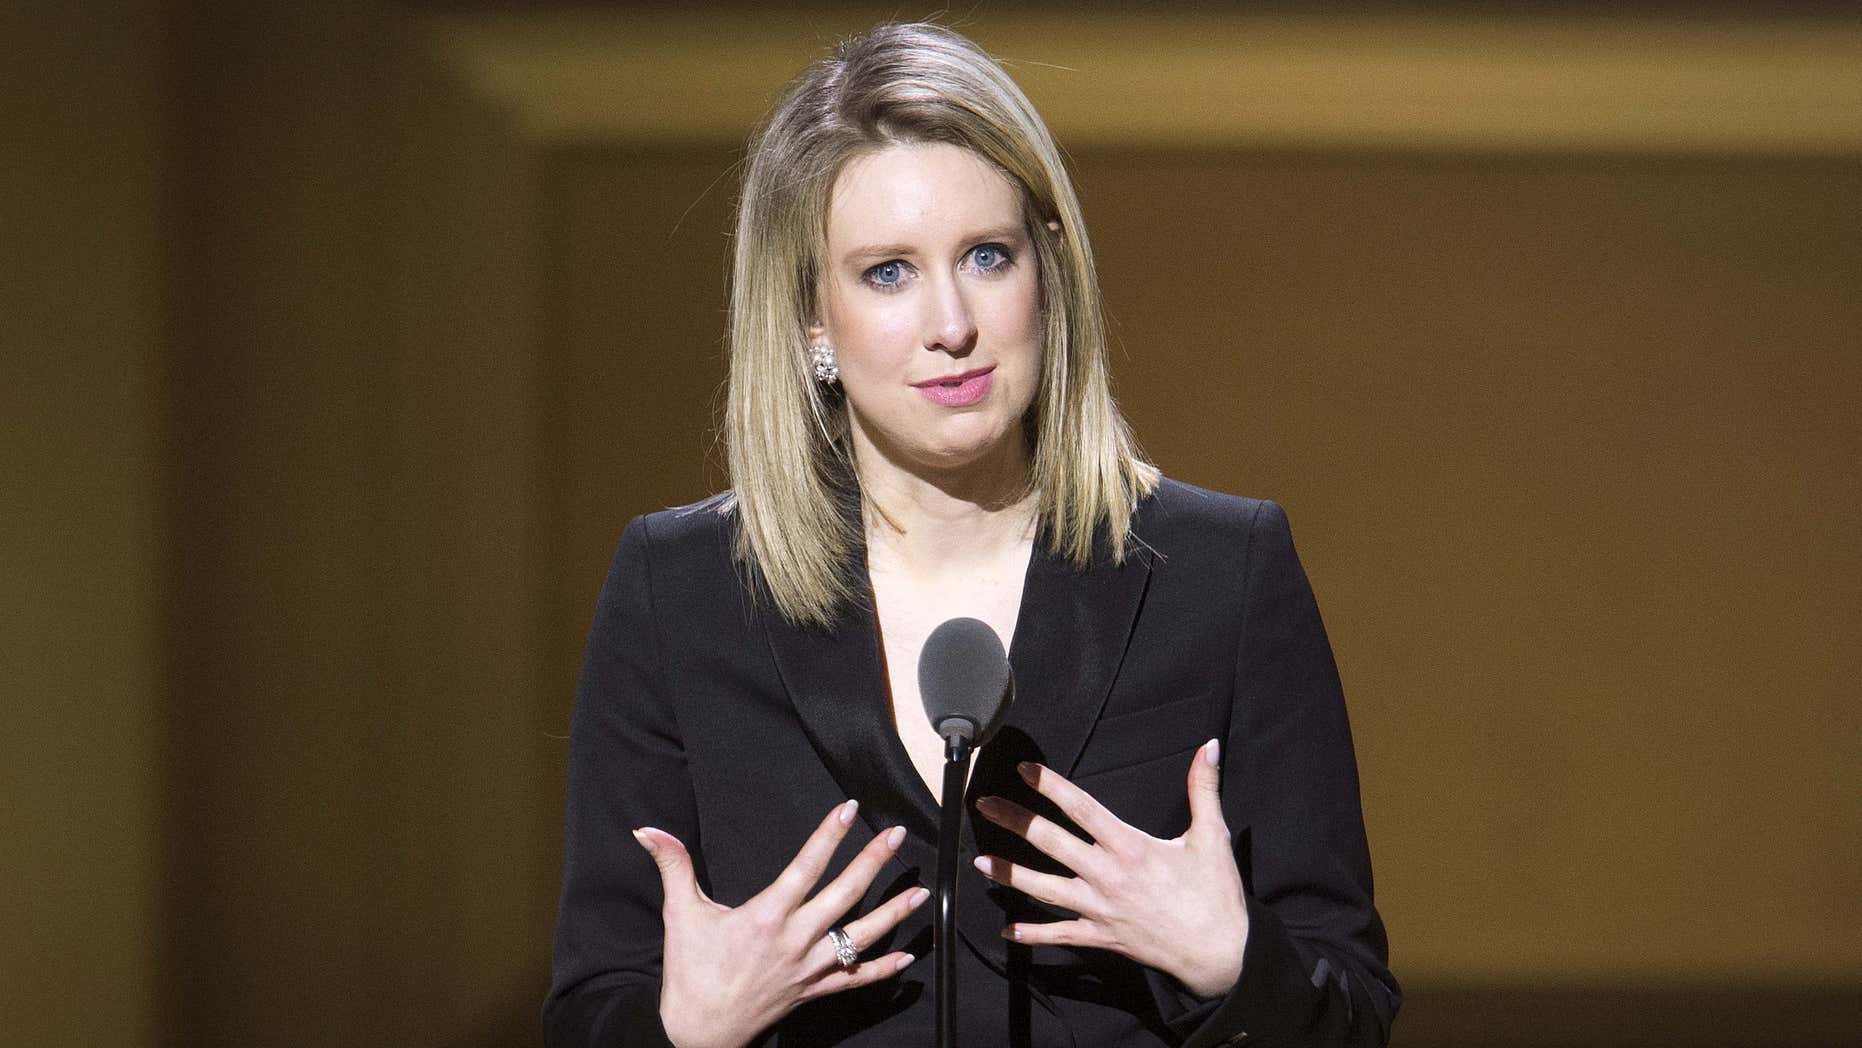 Nov. 9, 2015: Theranos Chief Executive Officer Elizabeth Holmes speaks on stage at the Glamour Women of the Year Awards where she receives an award, in the Manhattan borough of New York.